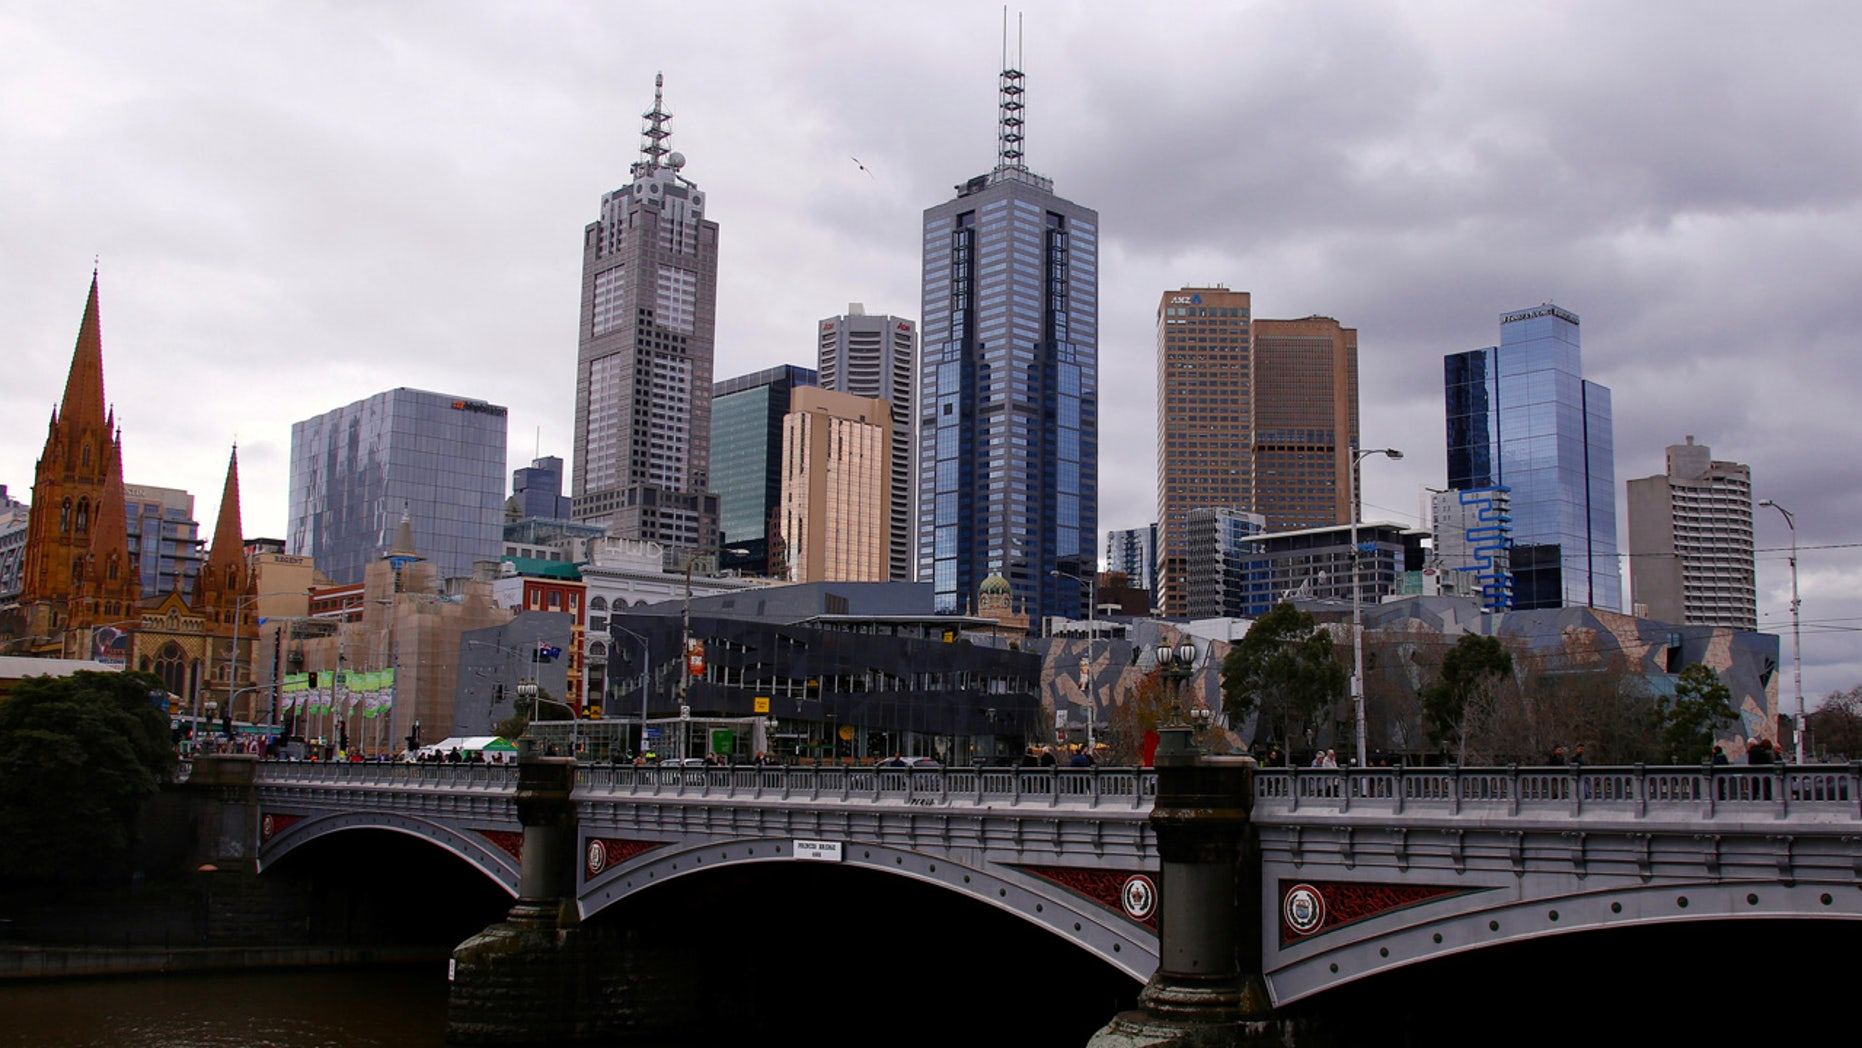 The central business district (CBD) of Melbourne can be seen from the area located along the Yarra River called Southbank located in Melbourne, Australia.